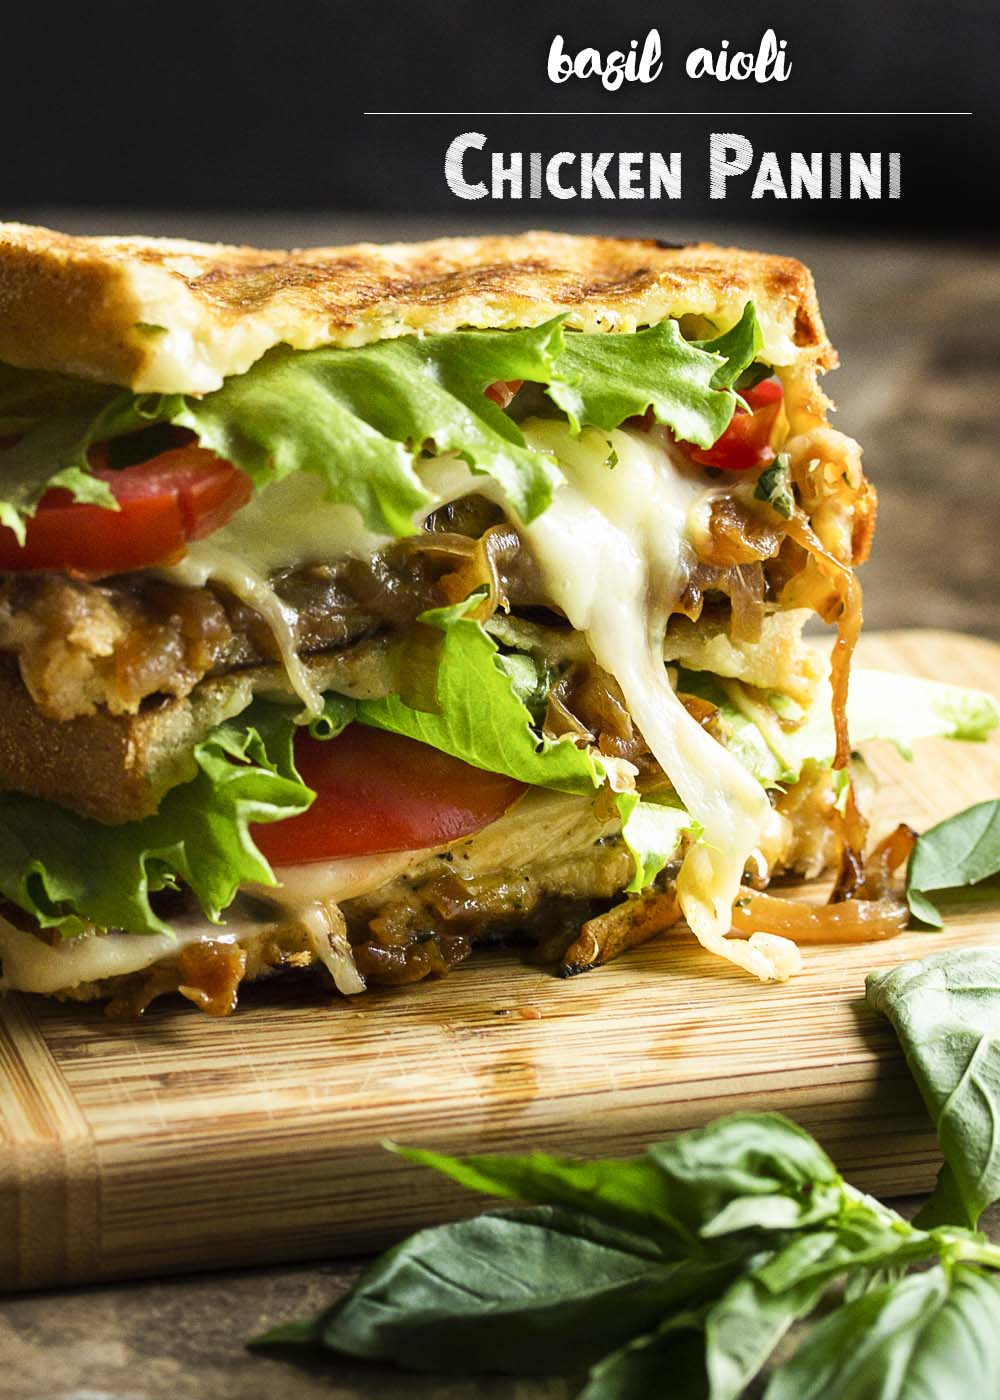 Creamy fontina cheese and sweet caramelized onions are paired with sliced chicken and a basil aioli in this chicken pesto panini. | justalittlebitofbacon.com